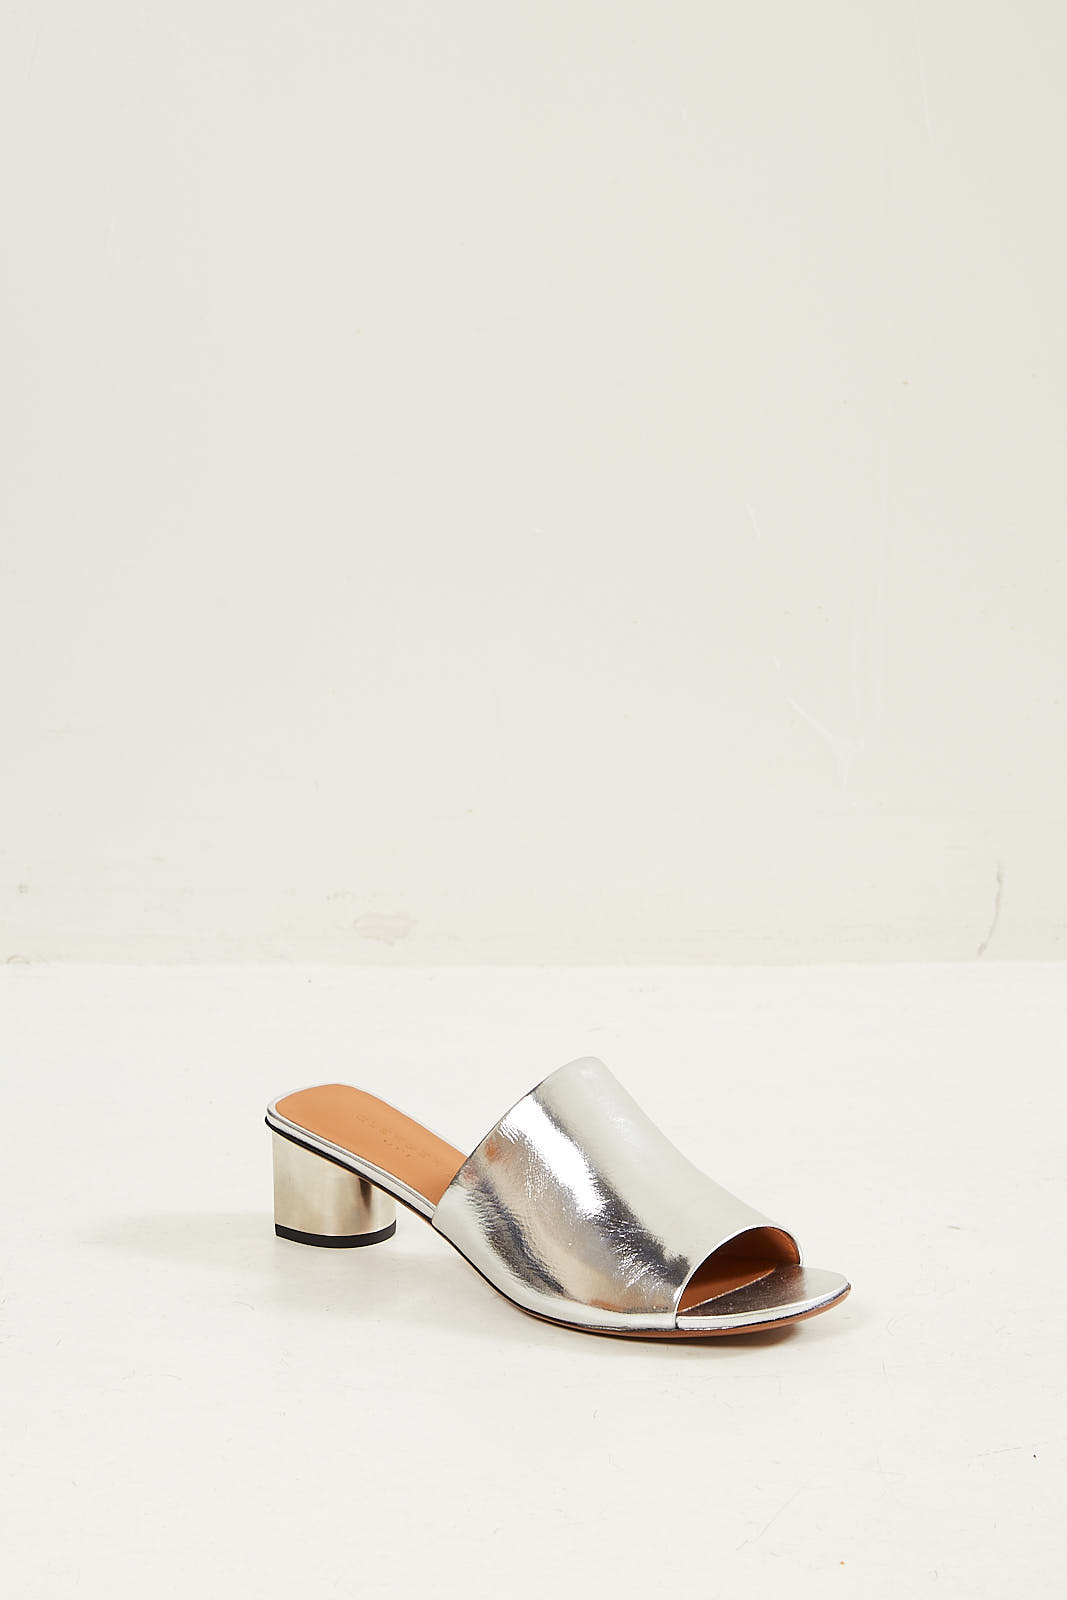 Clergerie Leo metallic slip on mules.